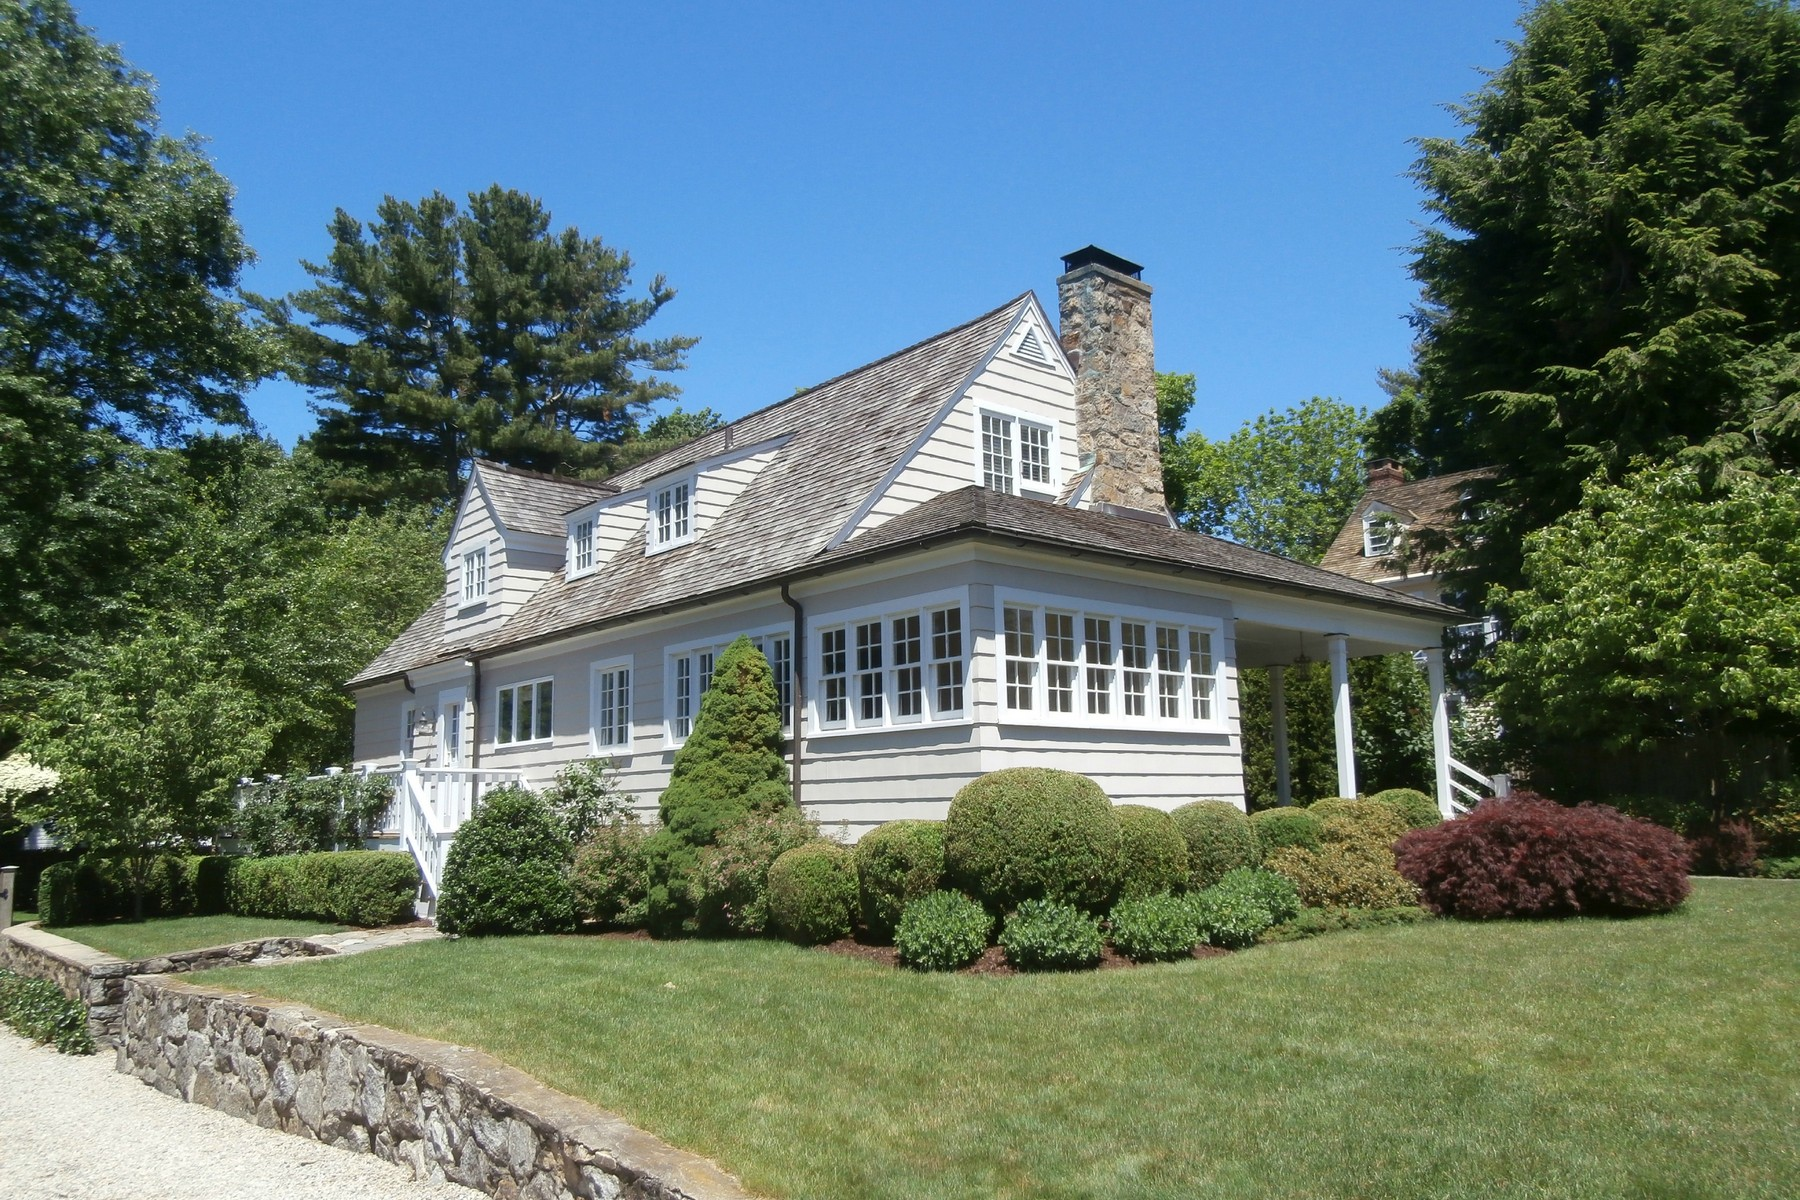 Single Family Home for Sale at THE COTTAGE ON WILLOW 194 Willow Street Southport, Fairfield, Connecticut, 06890 United States